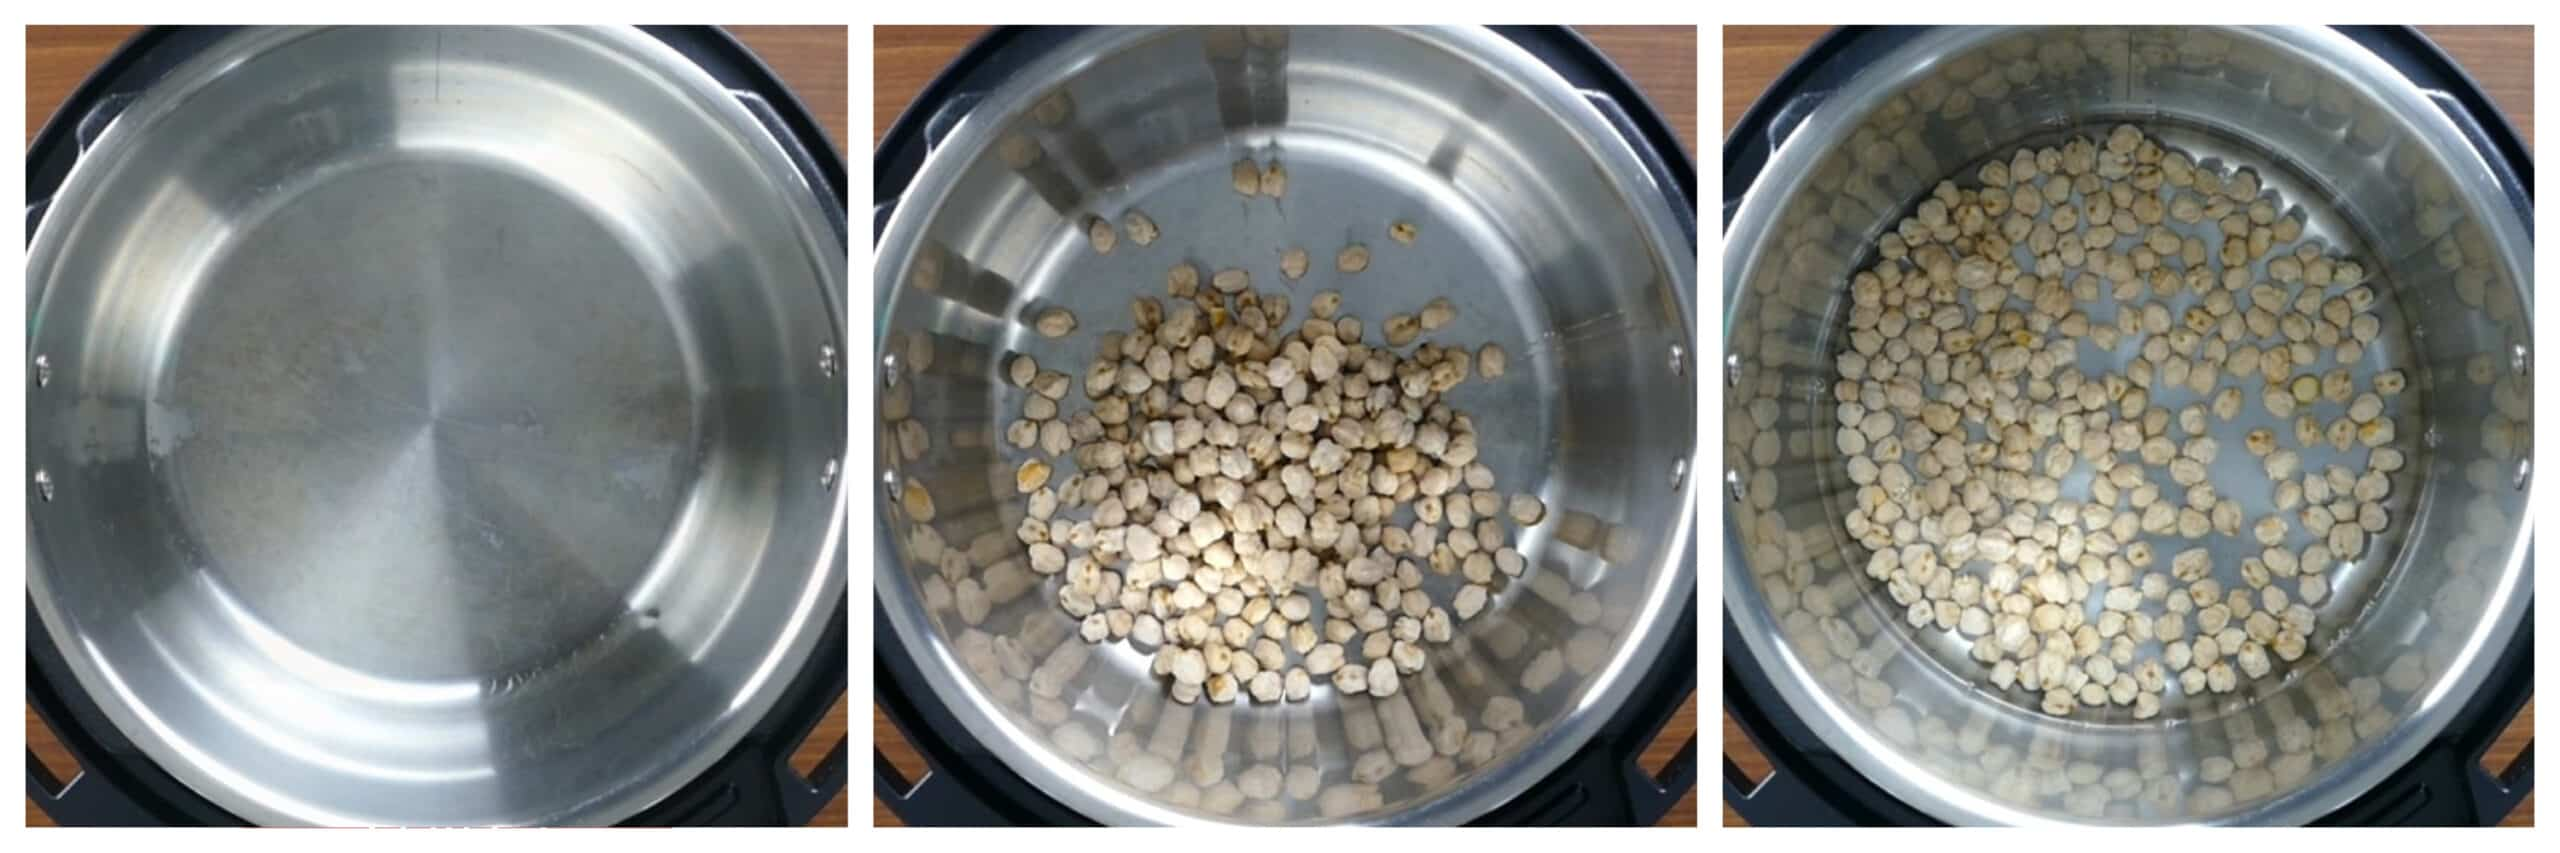 Instant Pot Chickpeas Instructions collage - empty inner pot, chickpeas added, water added